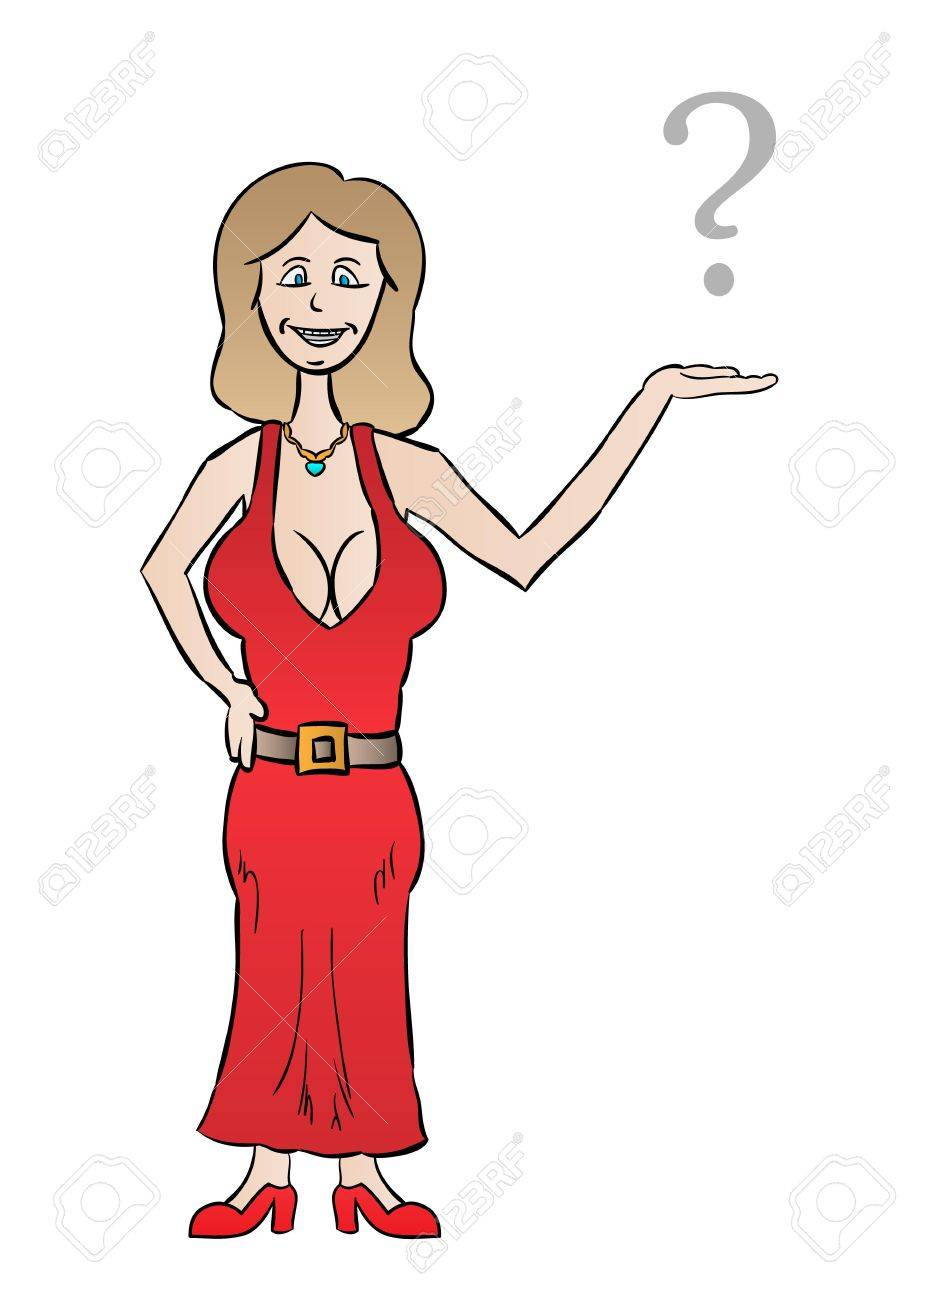 nice dressed woman with big tits and question mark, cartoon